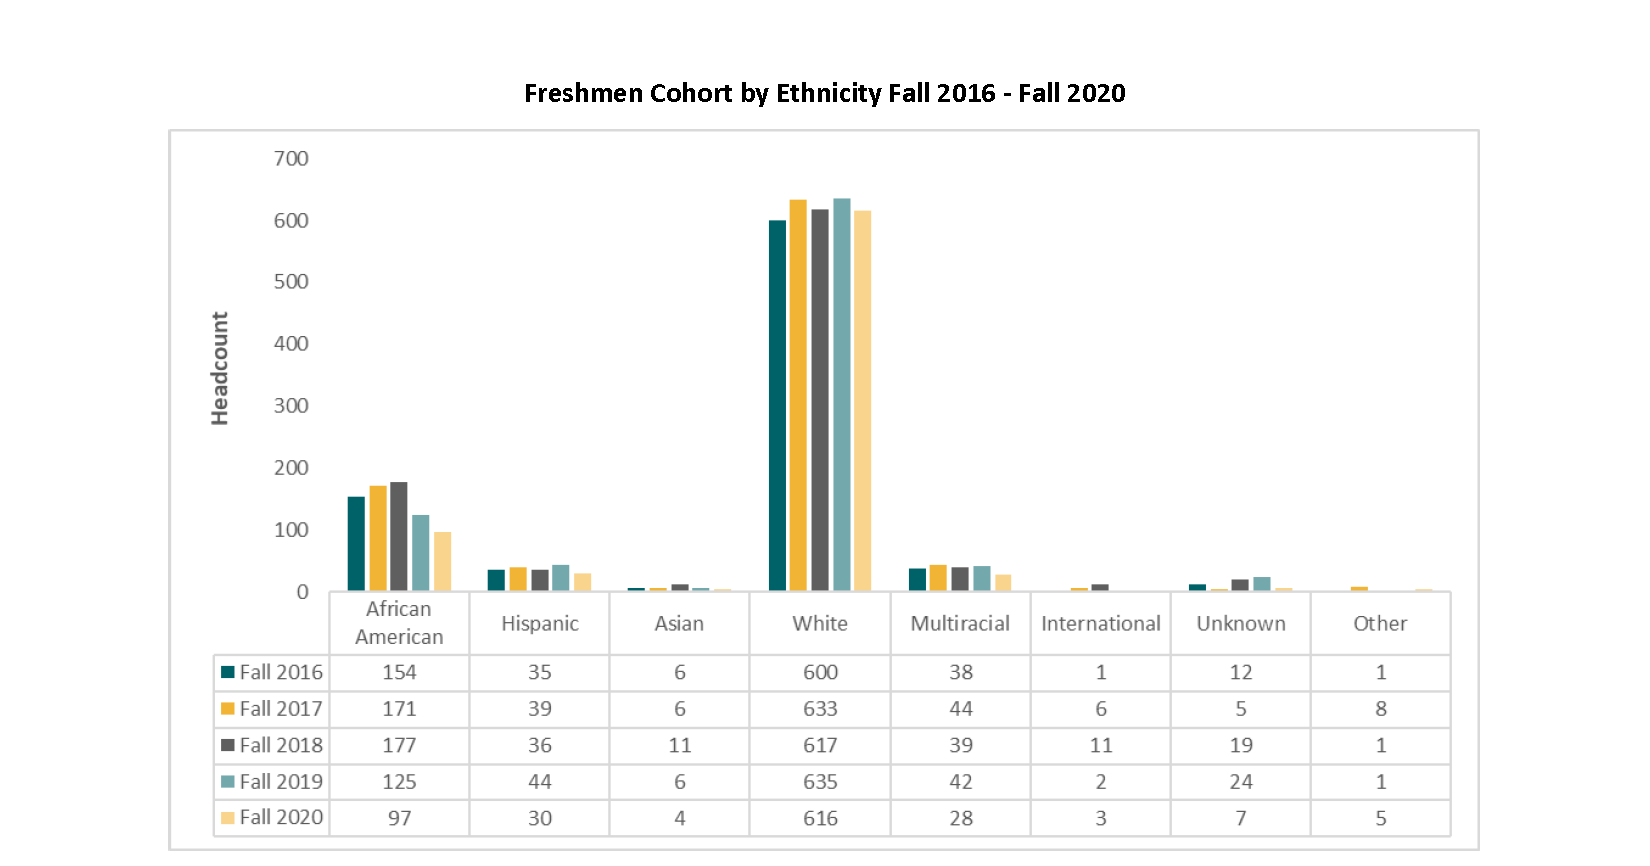 Freshmen Cohort by Ethnicity Fall 2015 - Fall 2019